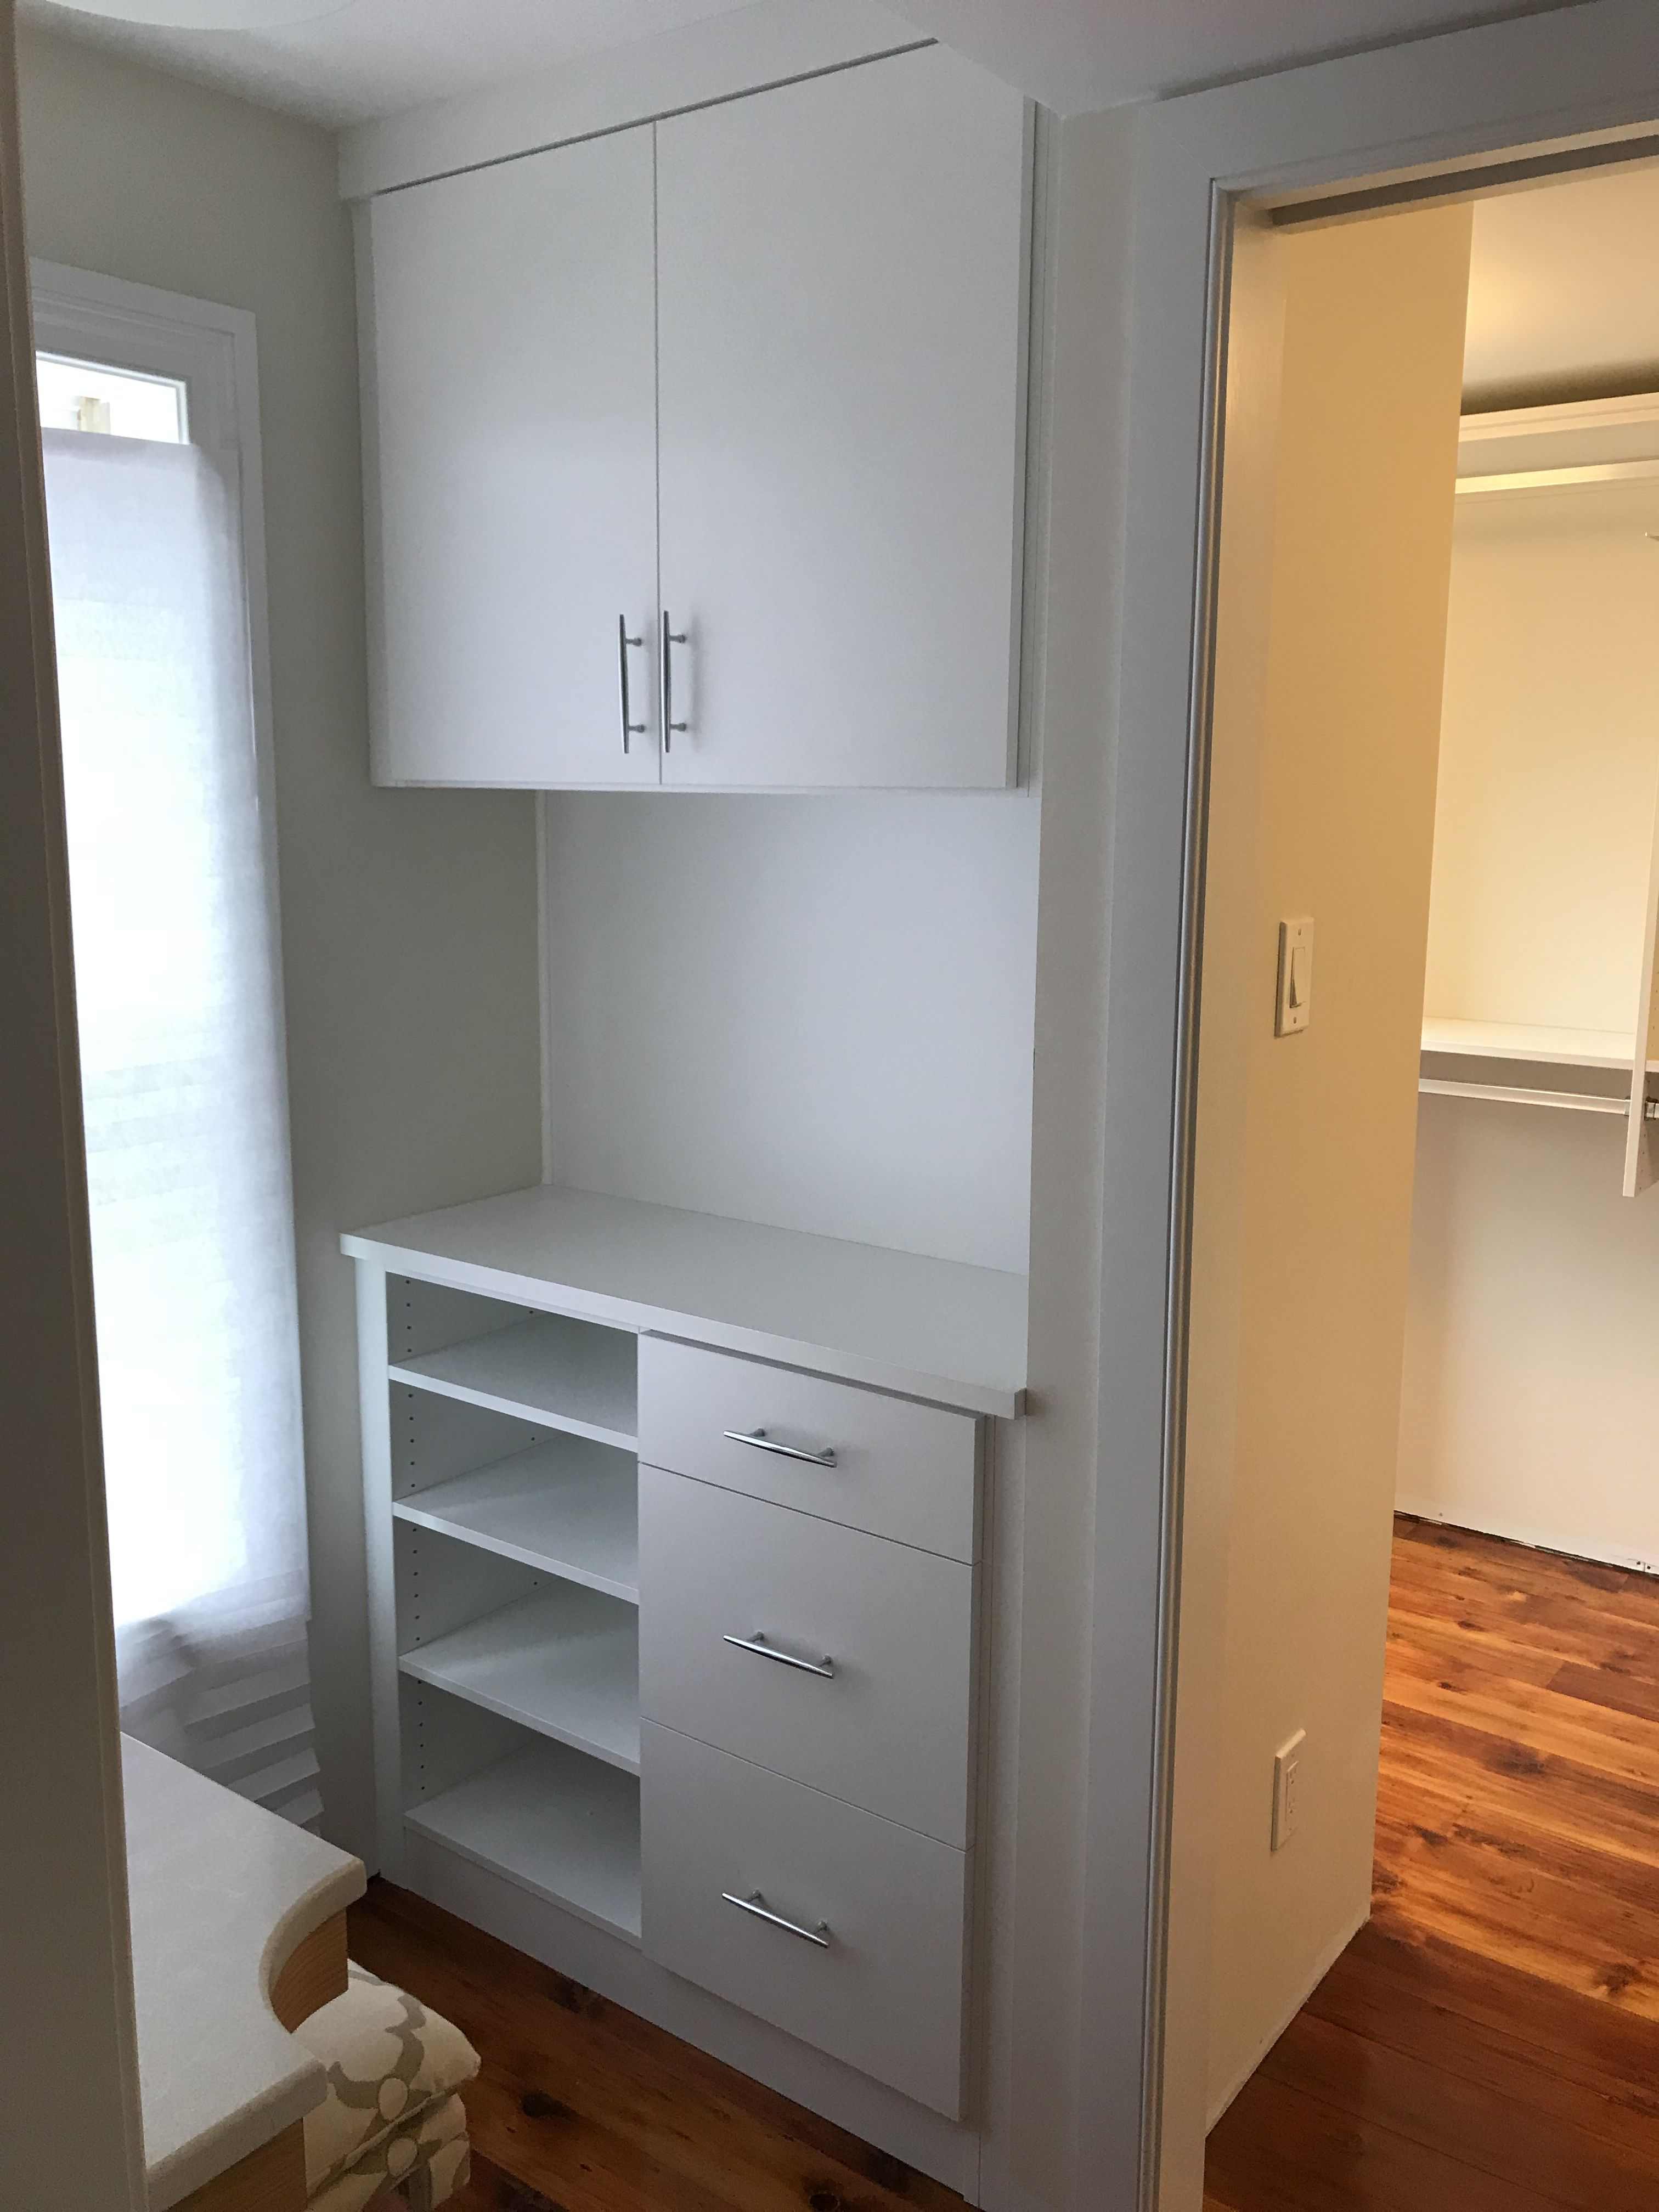 Pin by Jason Peters on California closets Installations